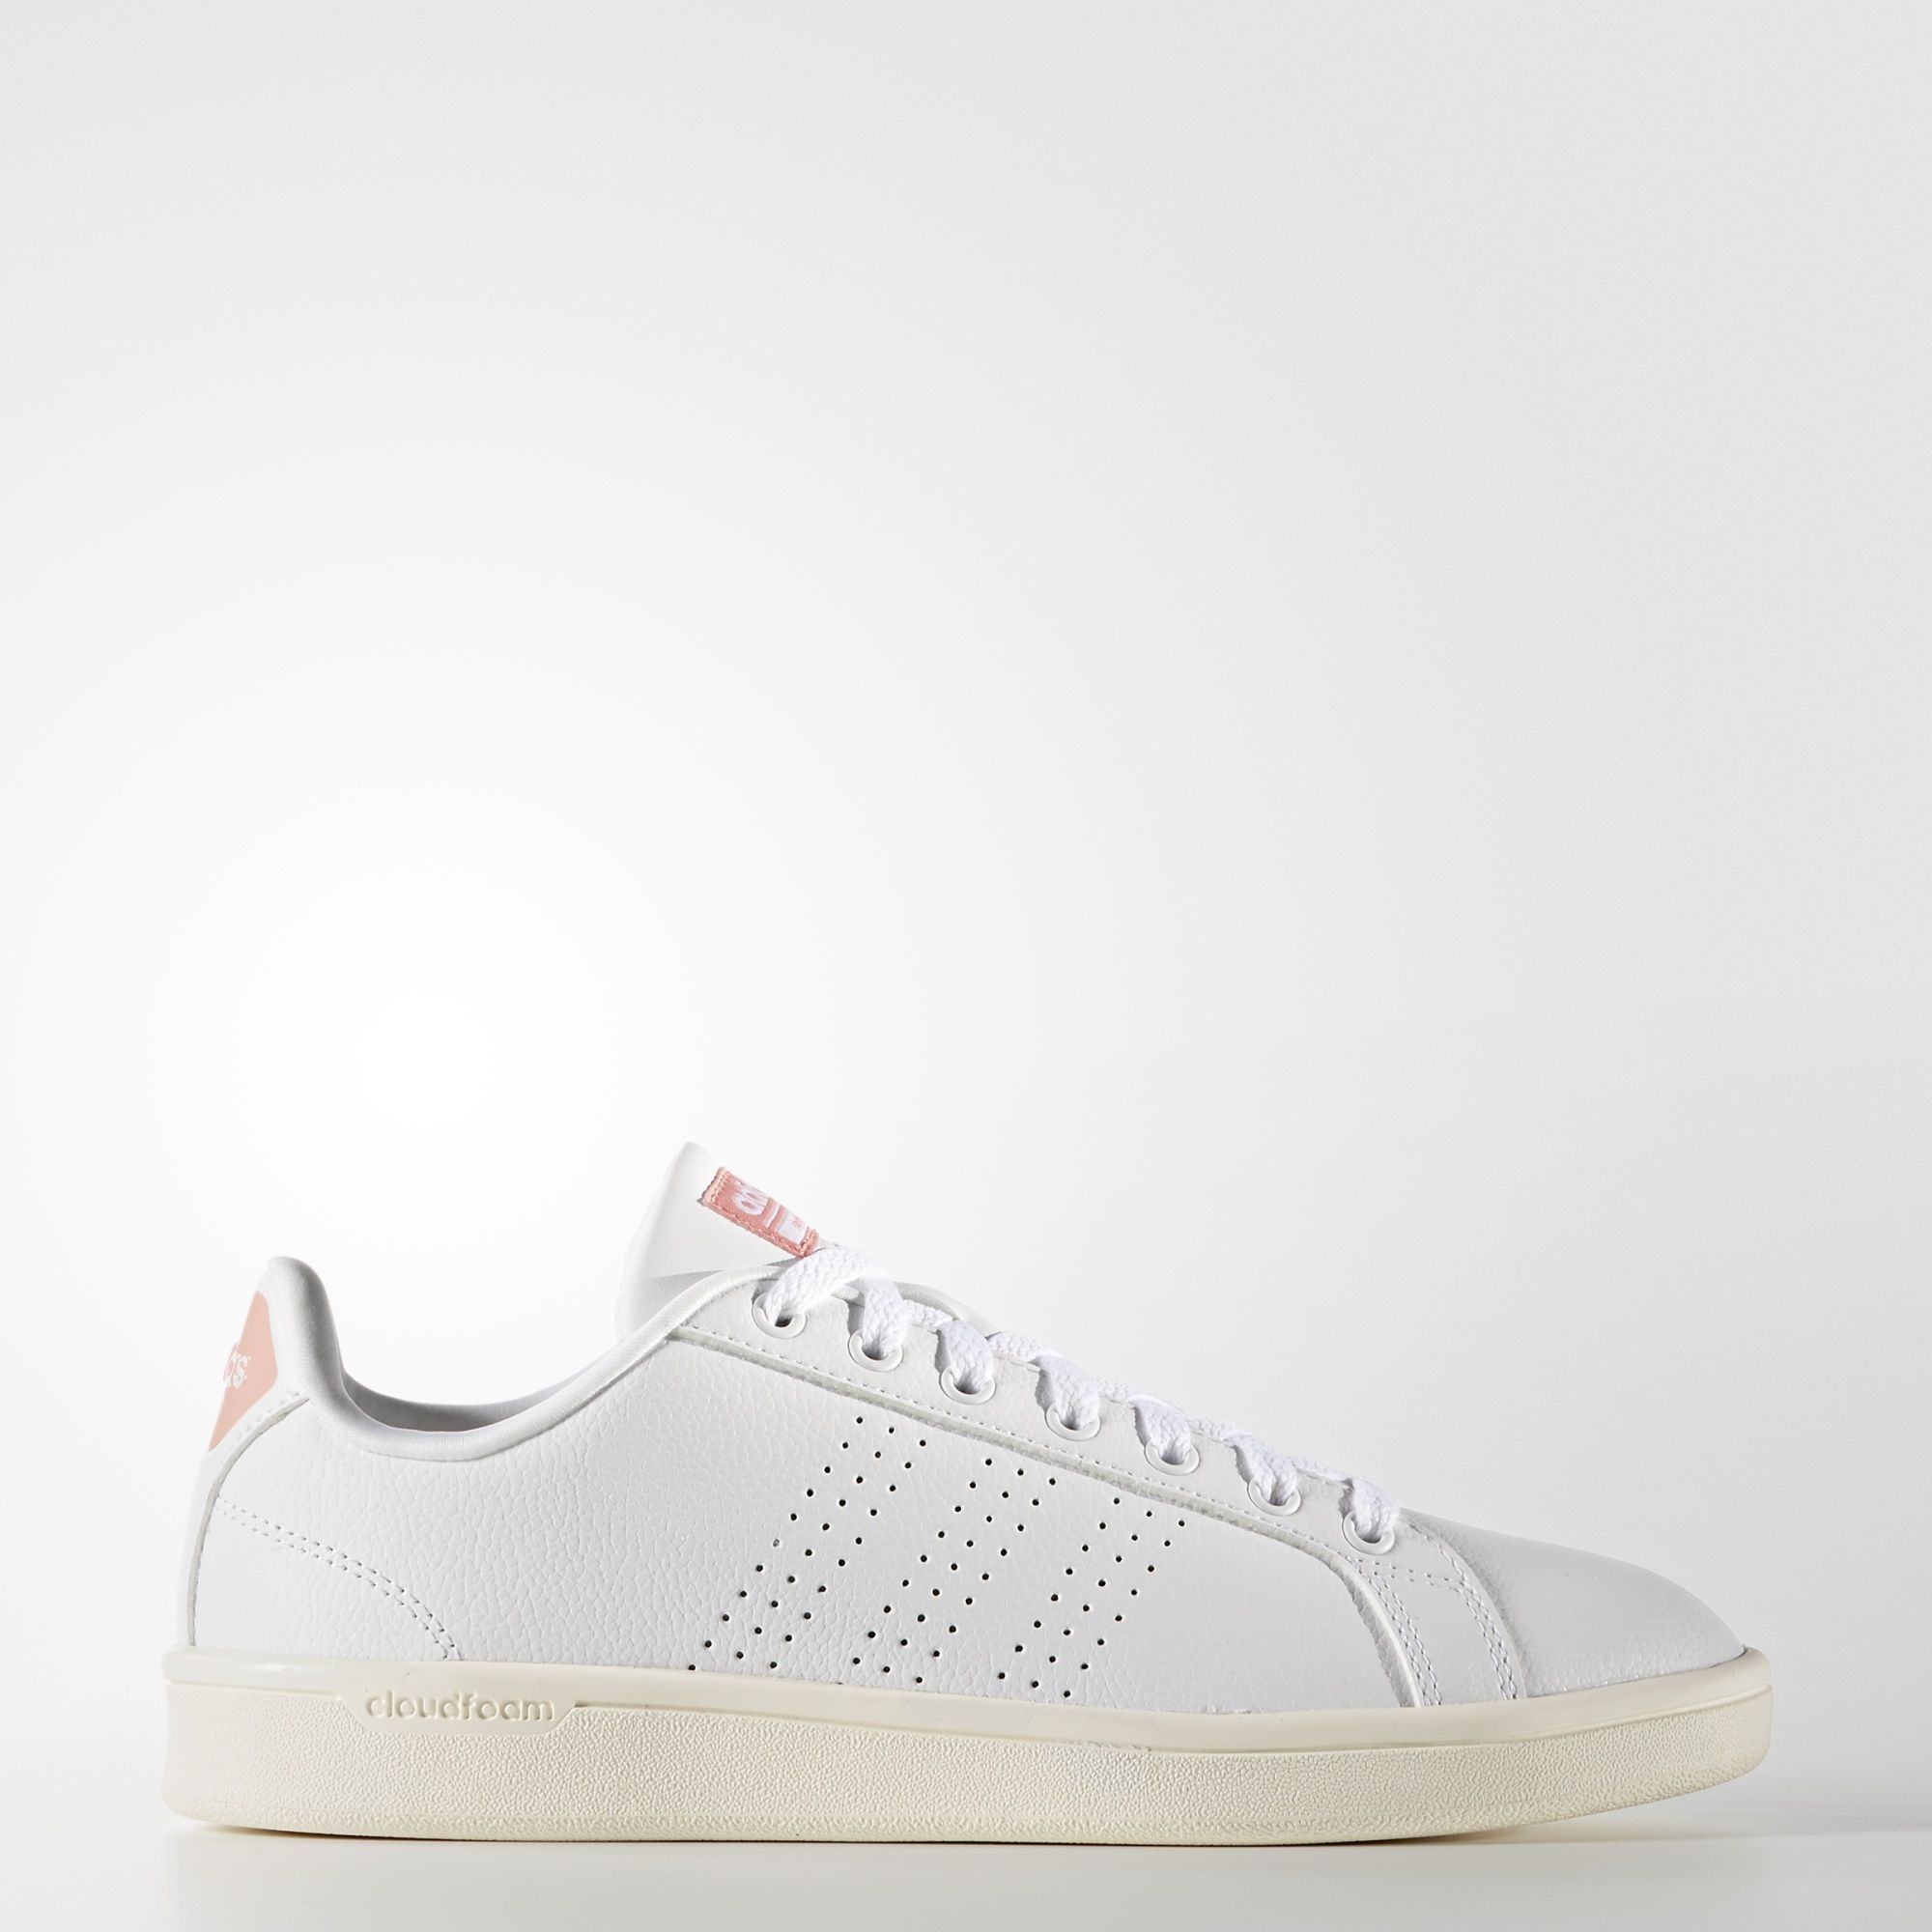 adidas - Cloudfoam Advantage Clean Shoes | Girls leather ...